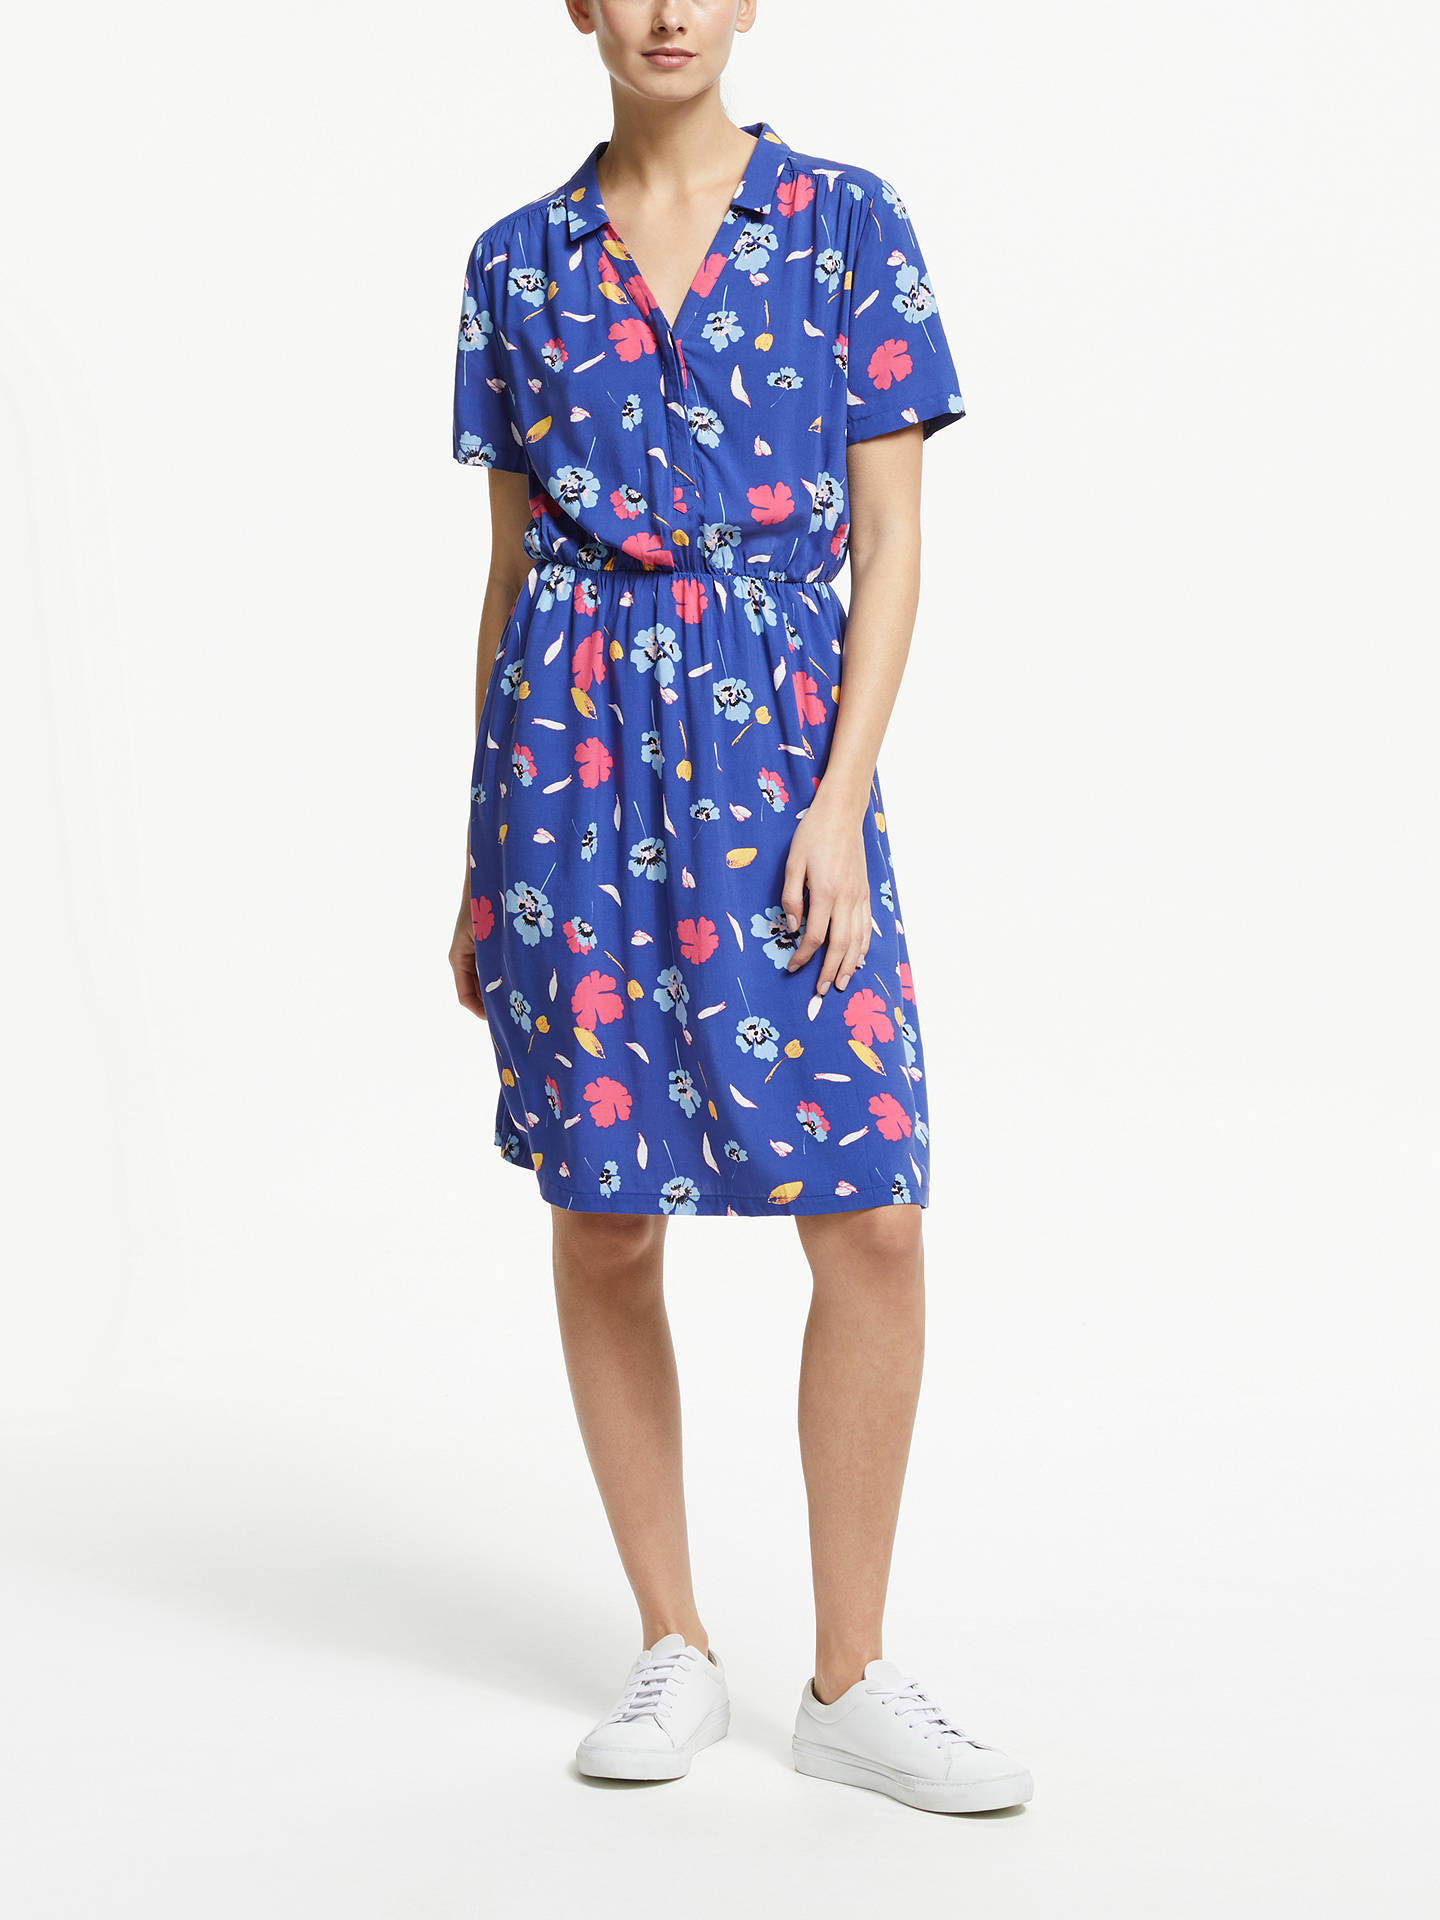 BuyCollection WEEKEND by John Lewis Poppy Silhouette Print Dress, Blue, 12 Online at johnlewis.com